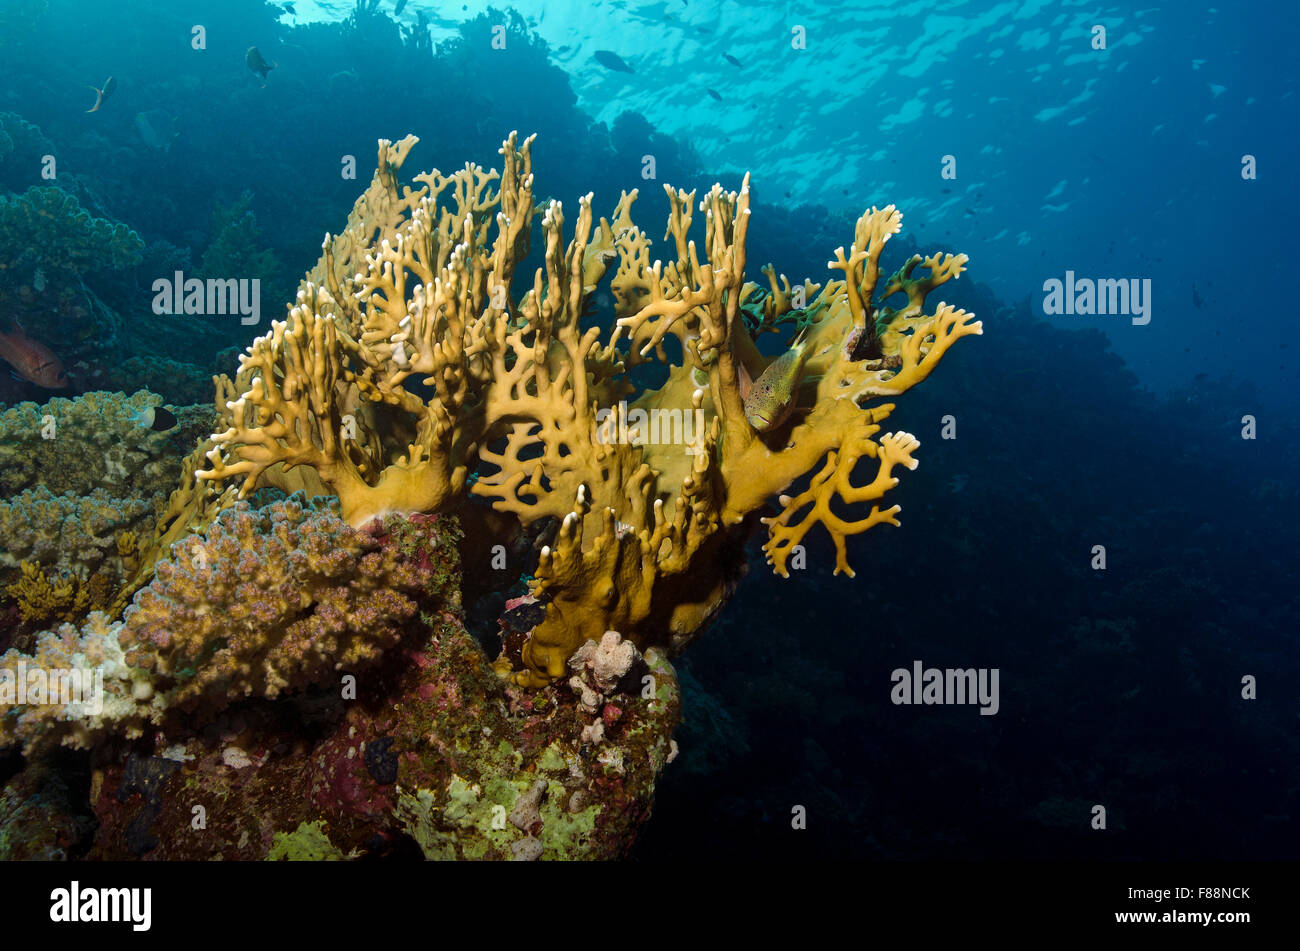 freckled hawkfish, Paracirrhites forsteri, hiding in Net Fire Coral, Millepora dichotoma, Marsa Alam, Red Sea, Egypt - Stock Image